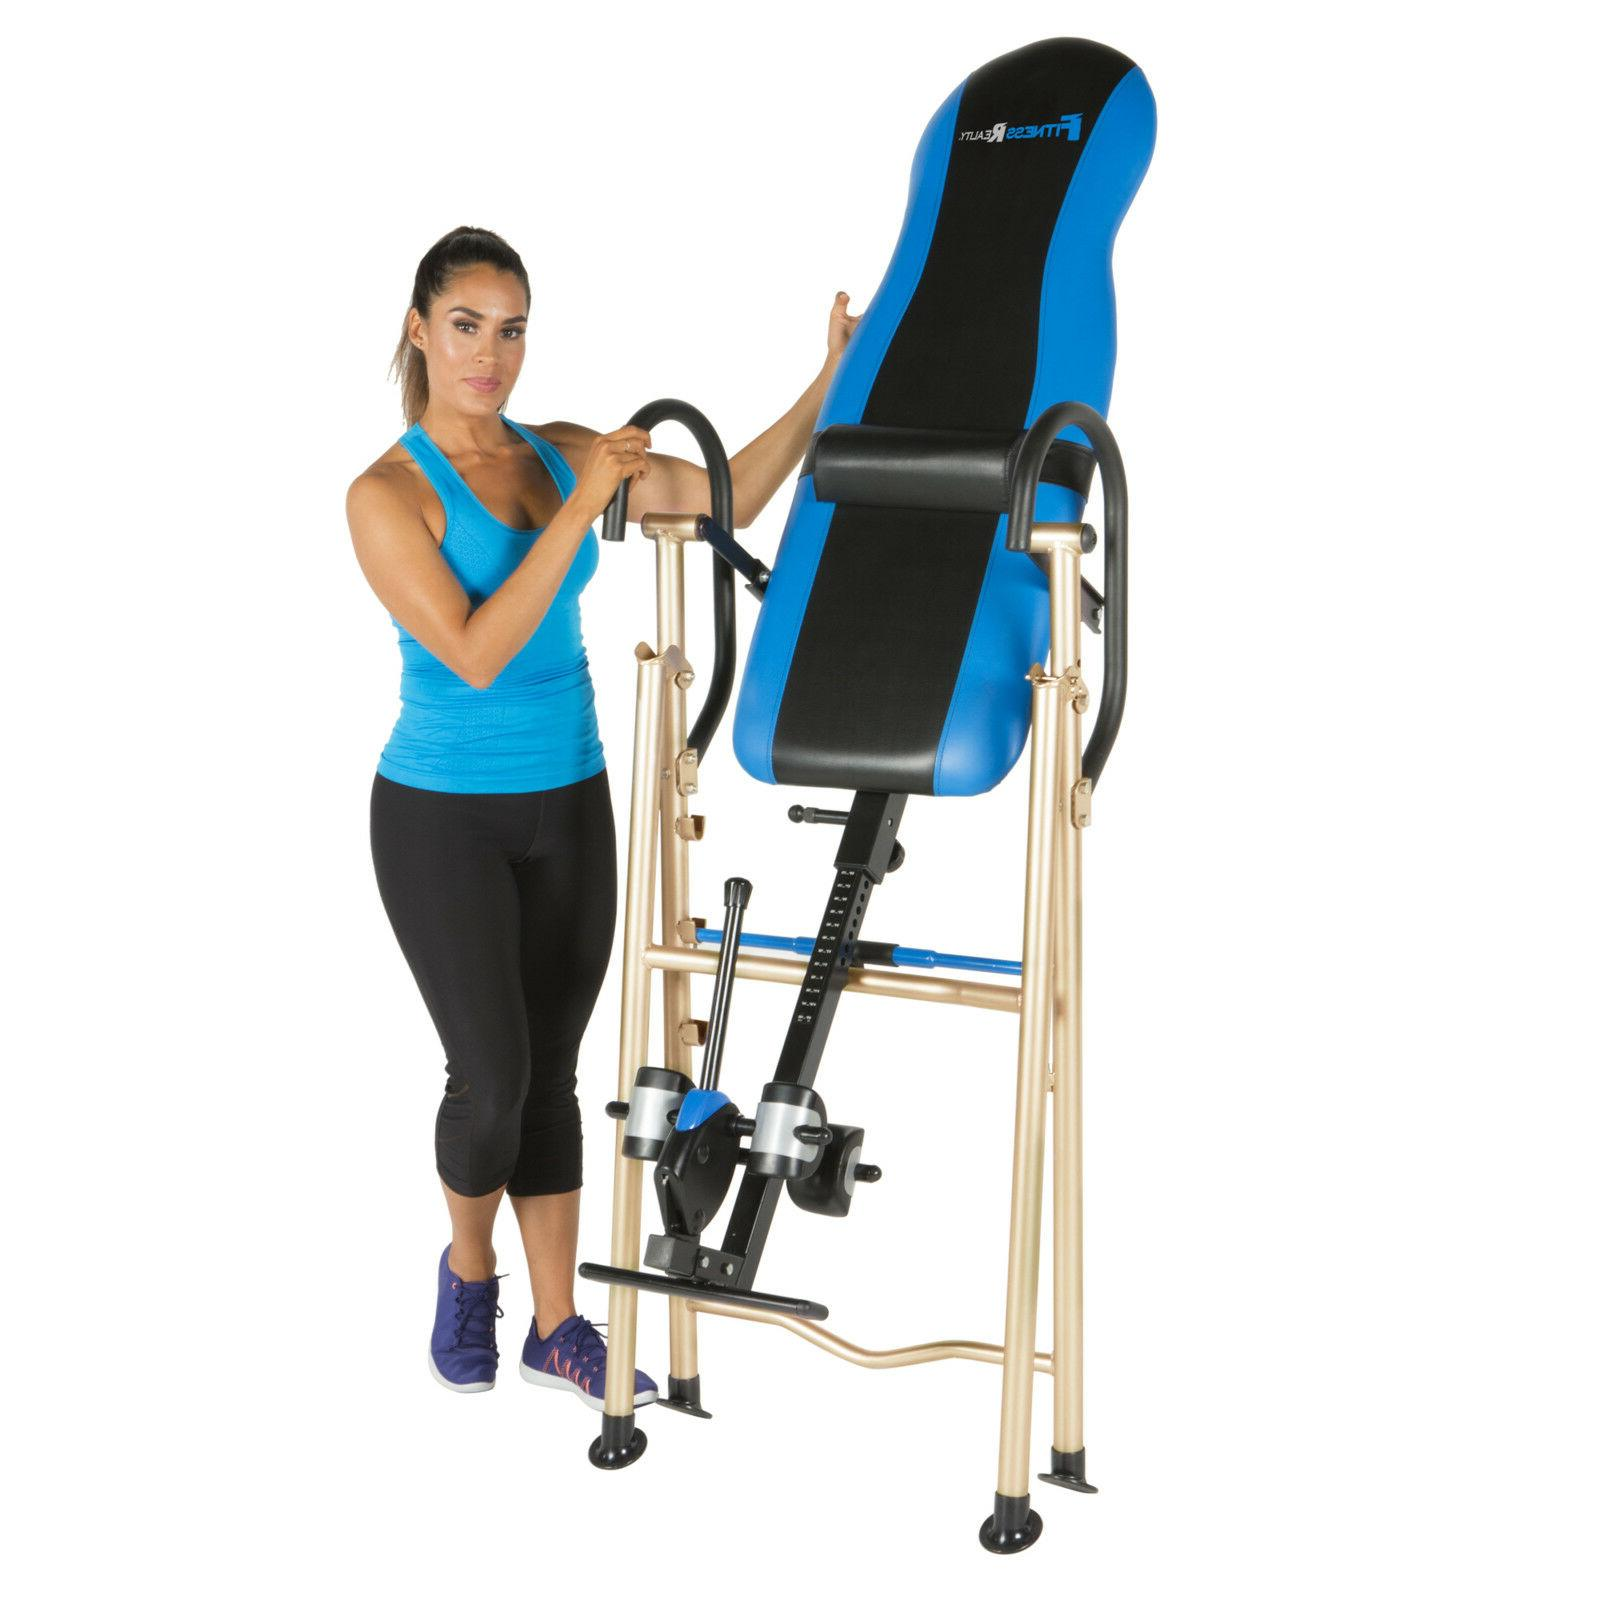 990xl inversion table with unique surelock safety